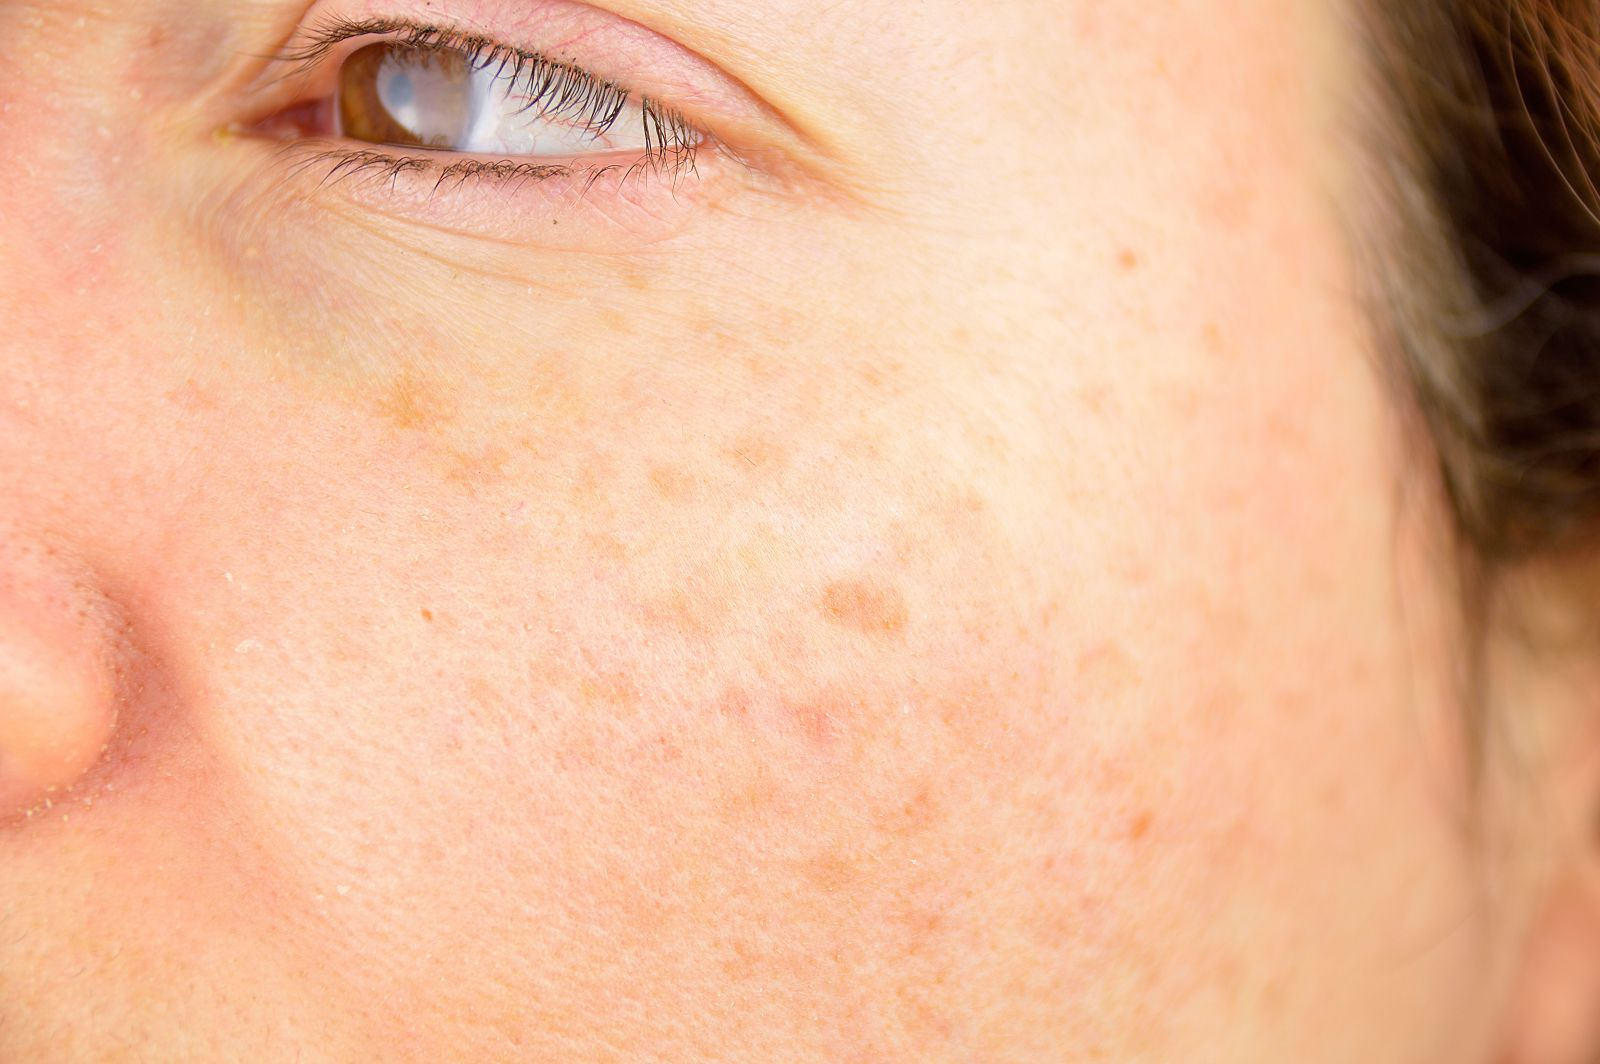 Image of a girl signifying Age spots